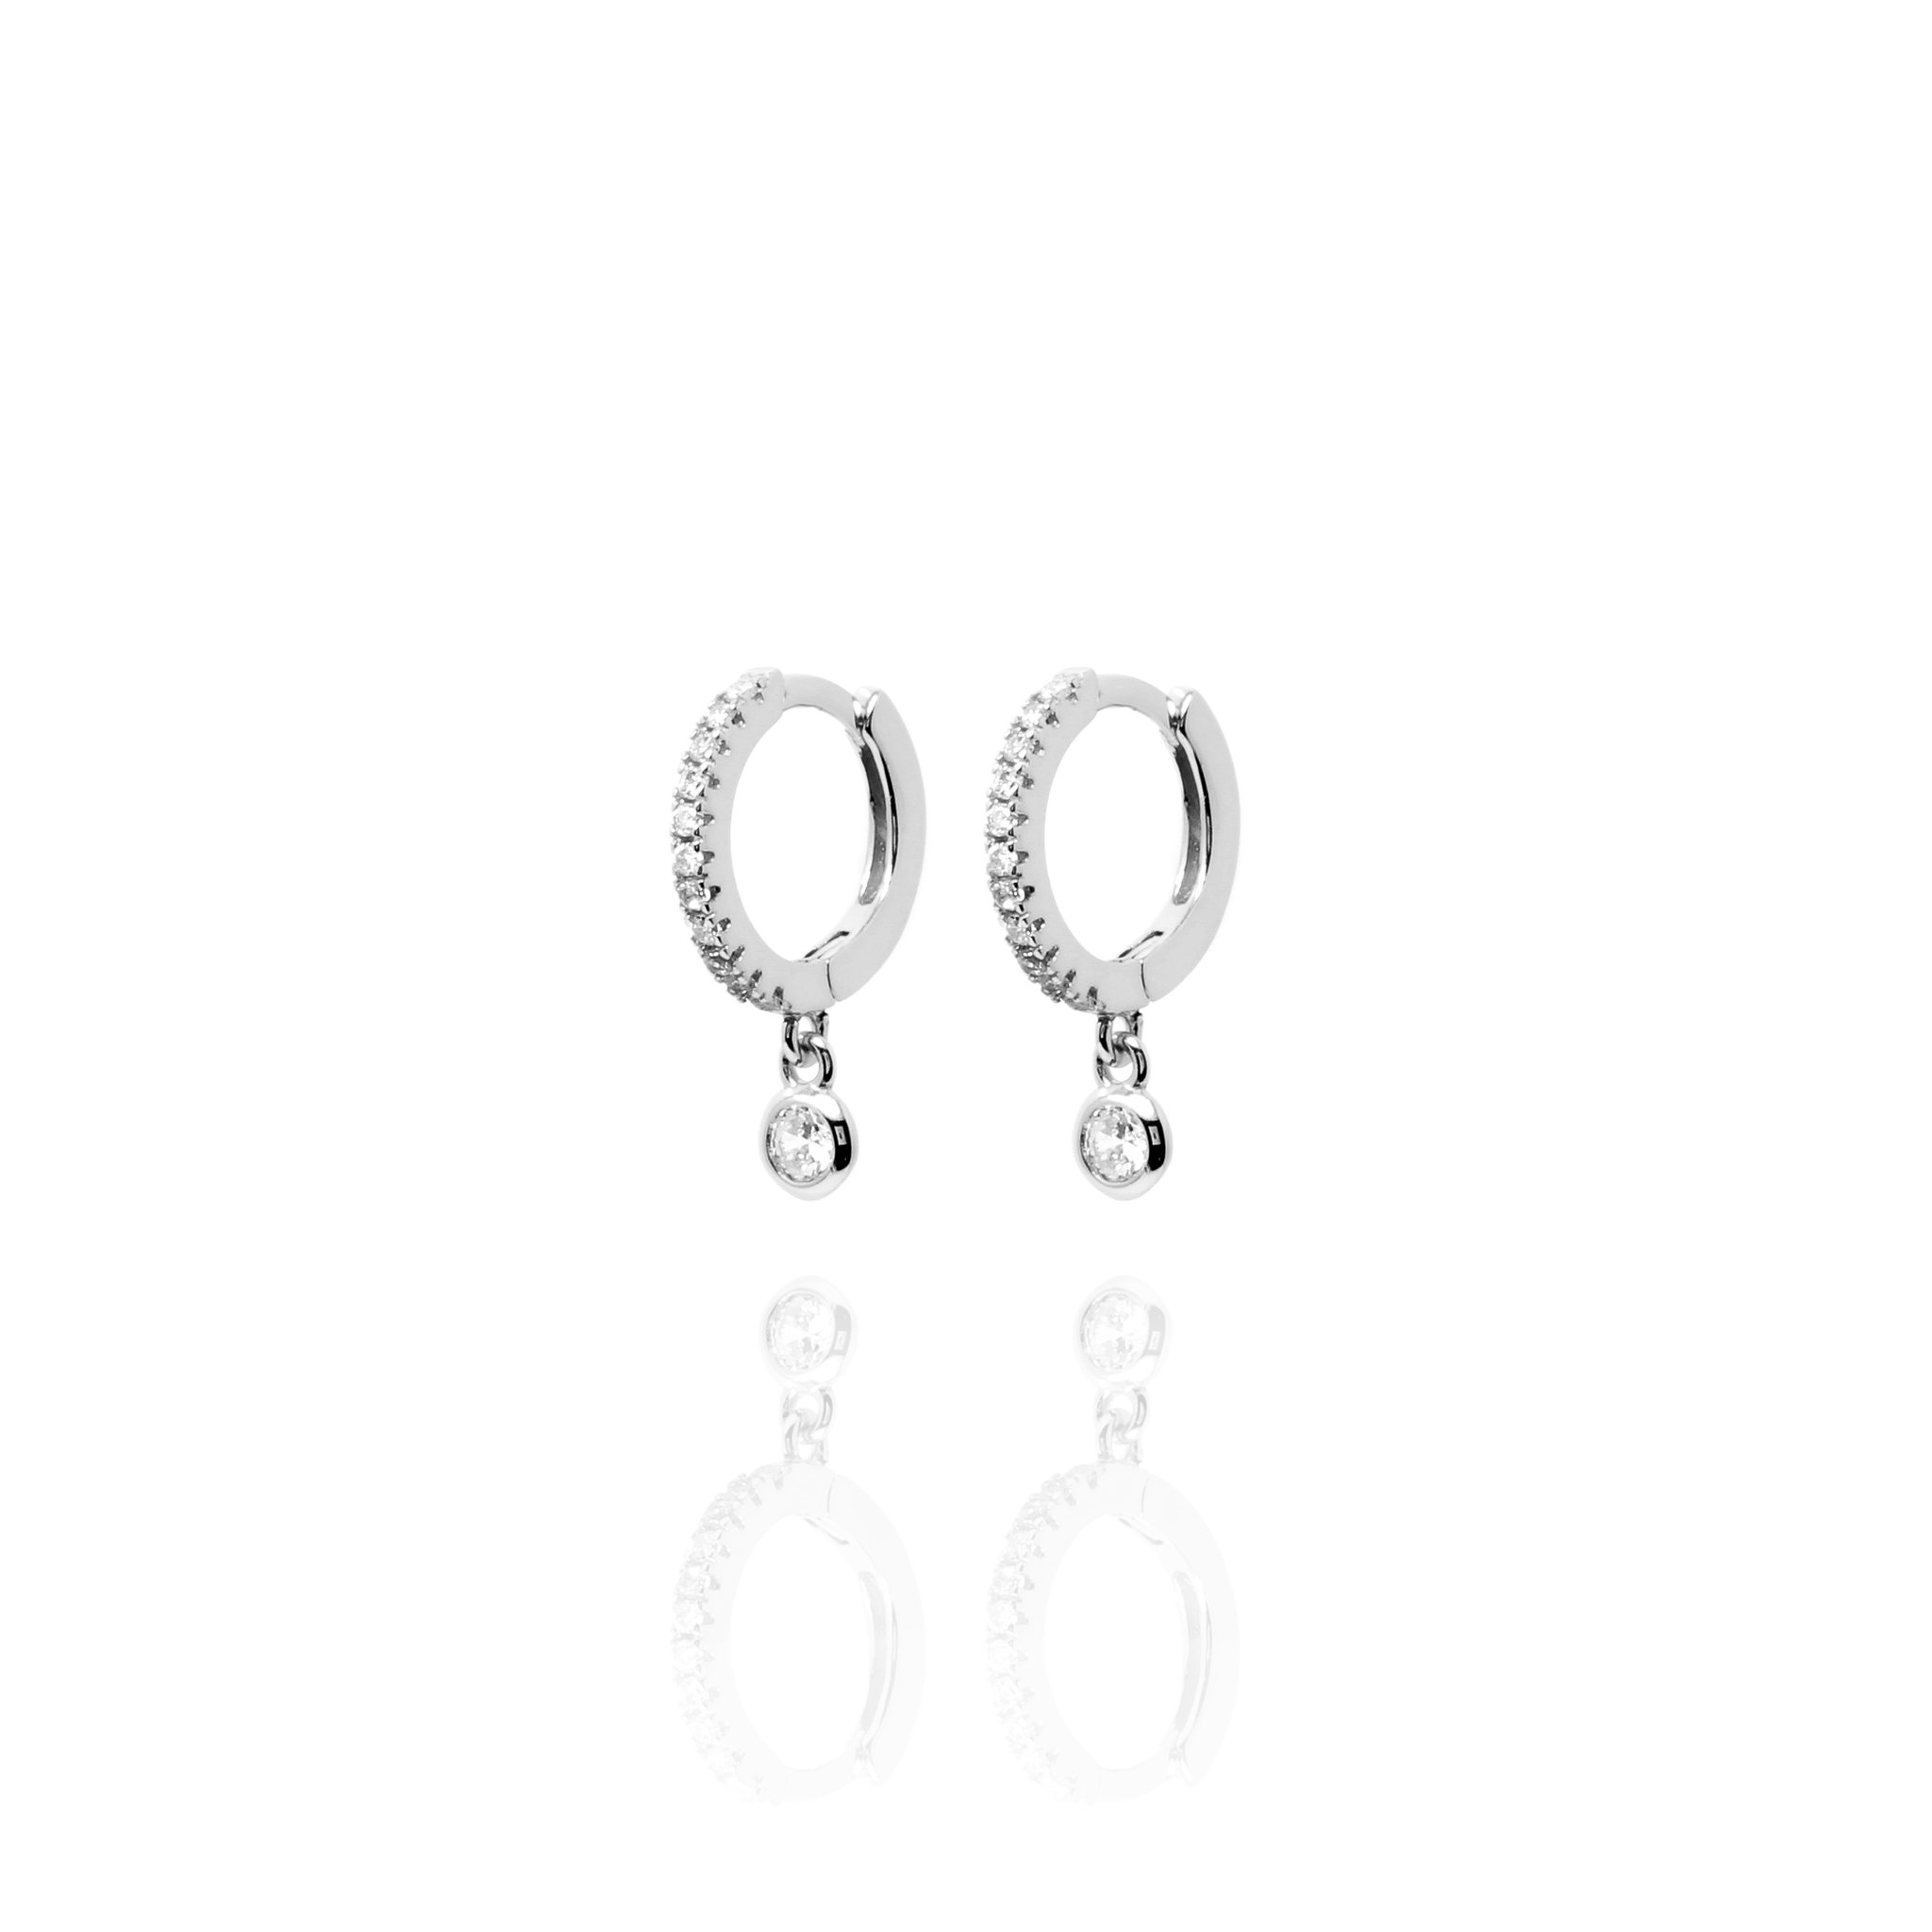 Huggies CZ Set With Single Hanging Stone - Sterling Silver EG-23/S